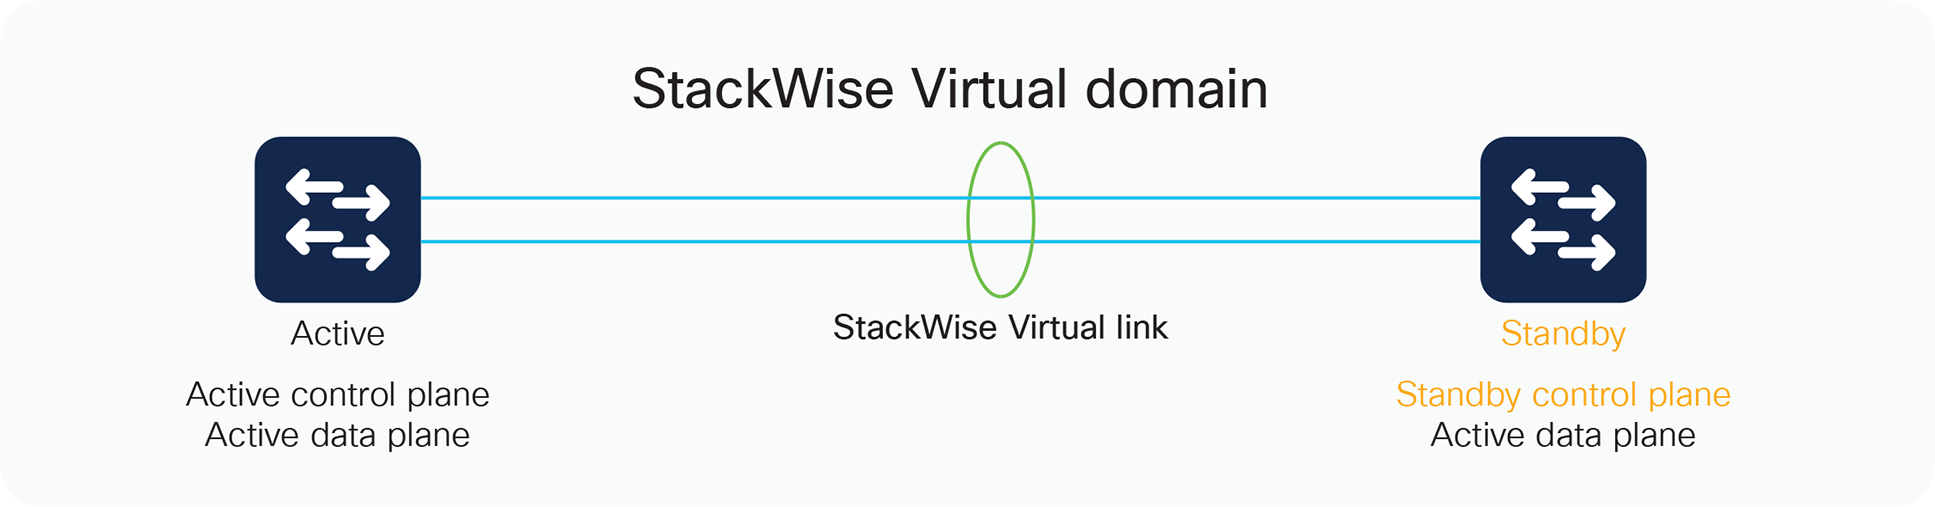 Components of StackWise Virtual